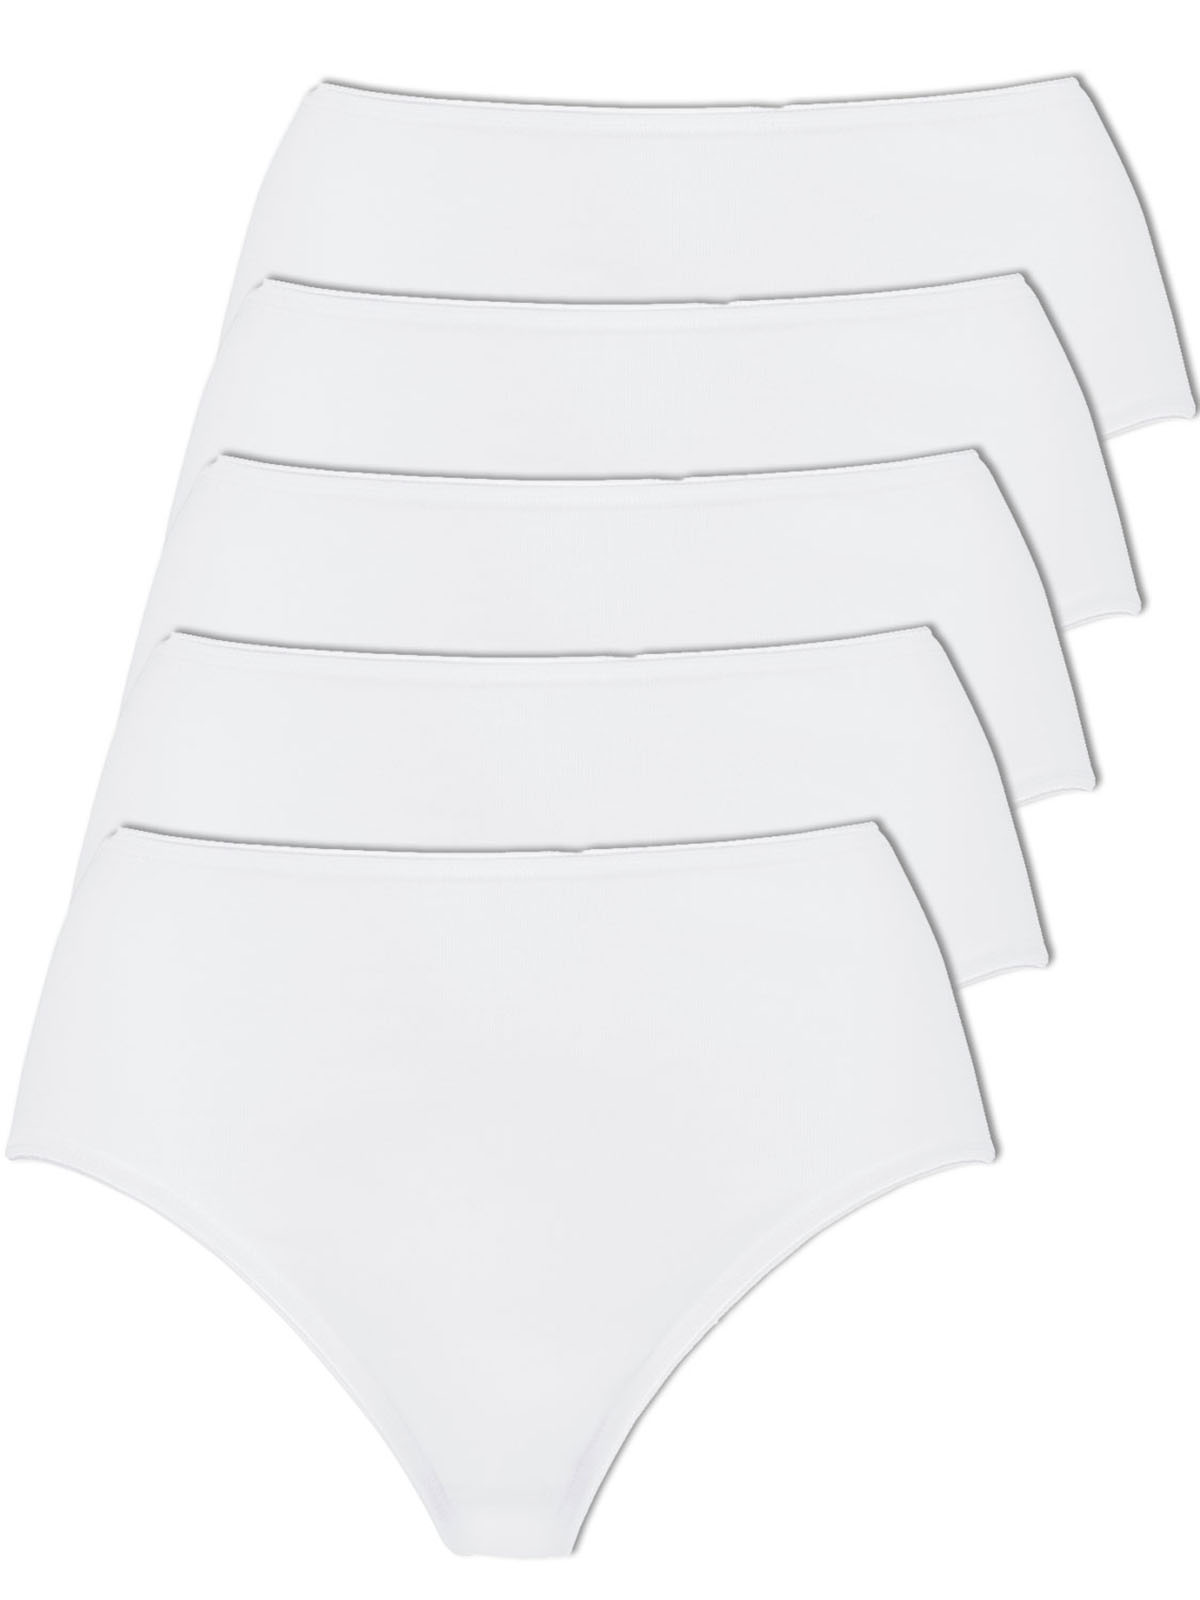 Naturana Pack of 5 Women's Briefs 802103